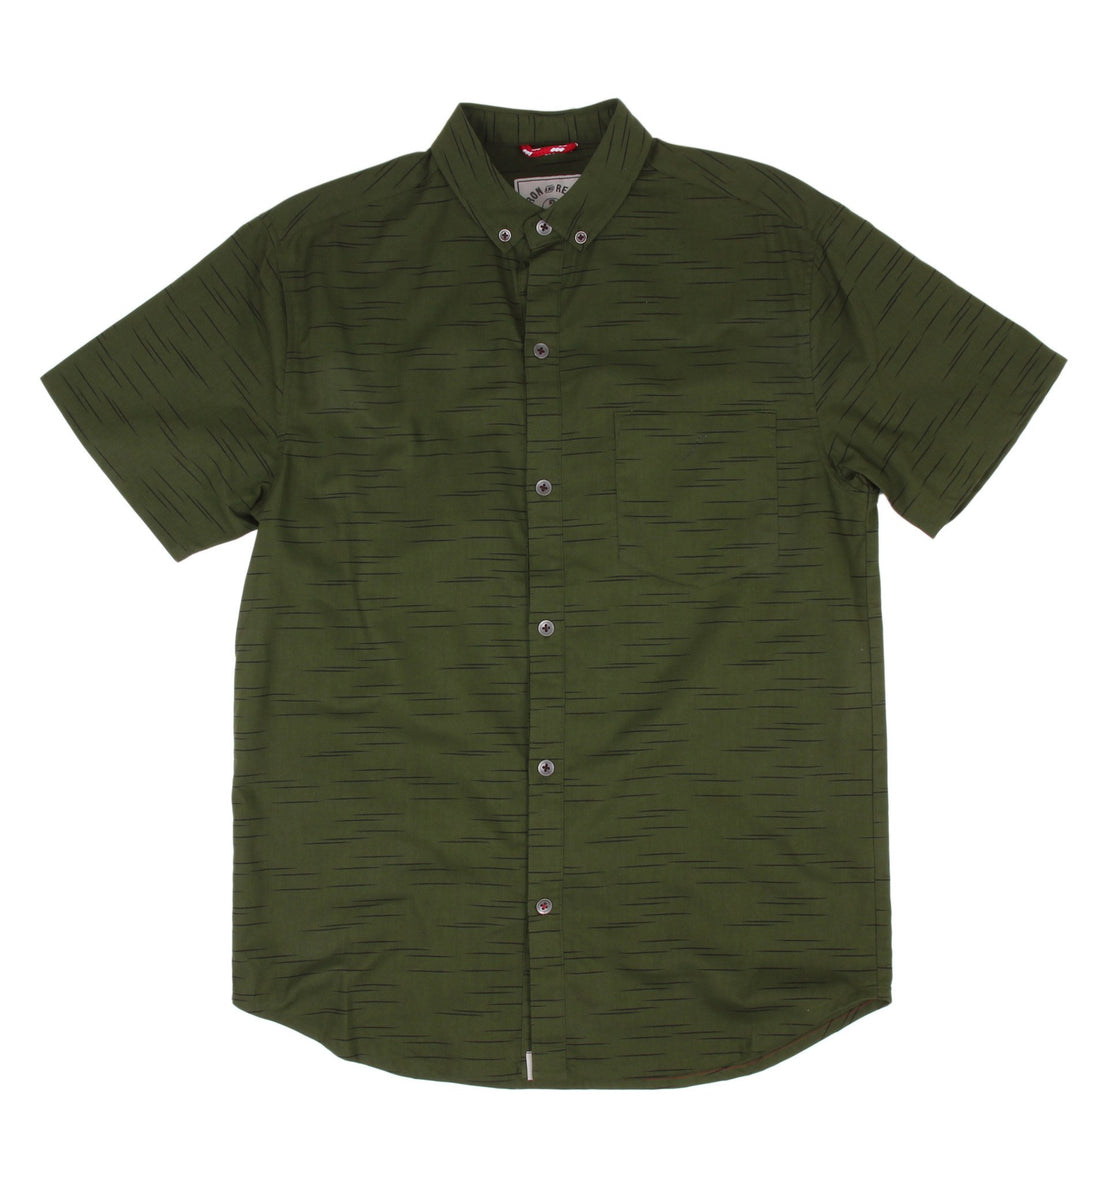 Linear Shirt - Tops - Iron and Resin